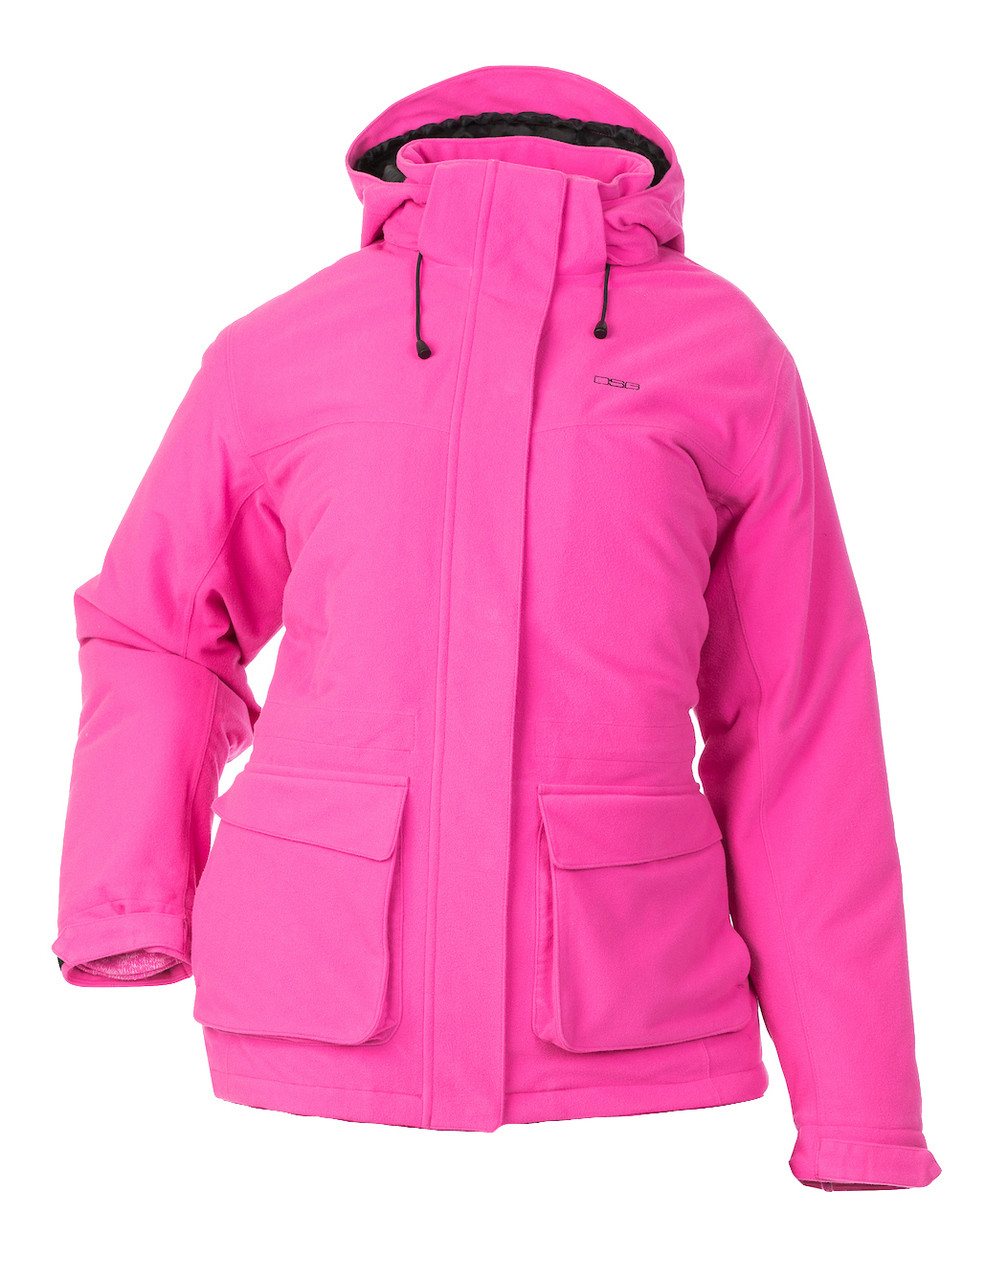 8979886621606 Kylie 3-in-1 Hunting Jacket - Removable Fleece Liner - Can Be Worn